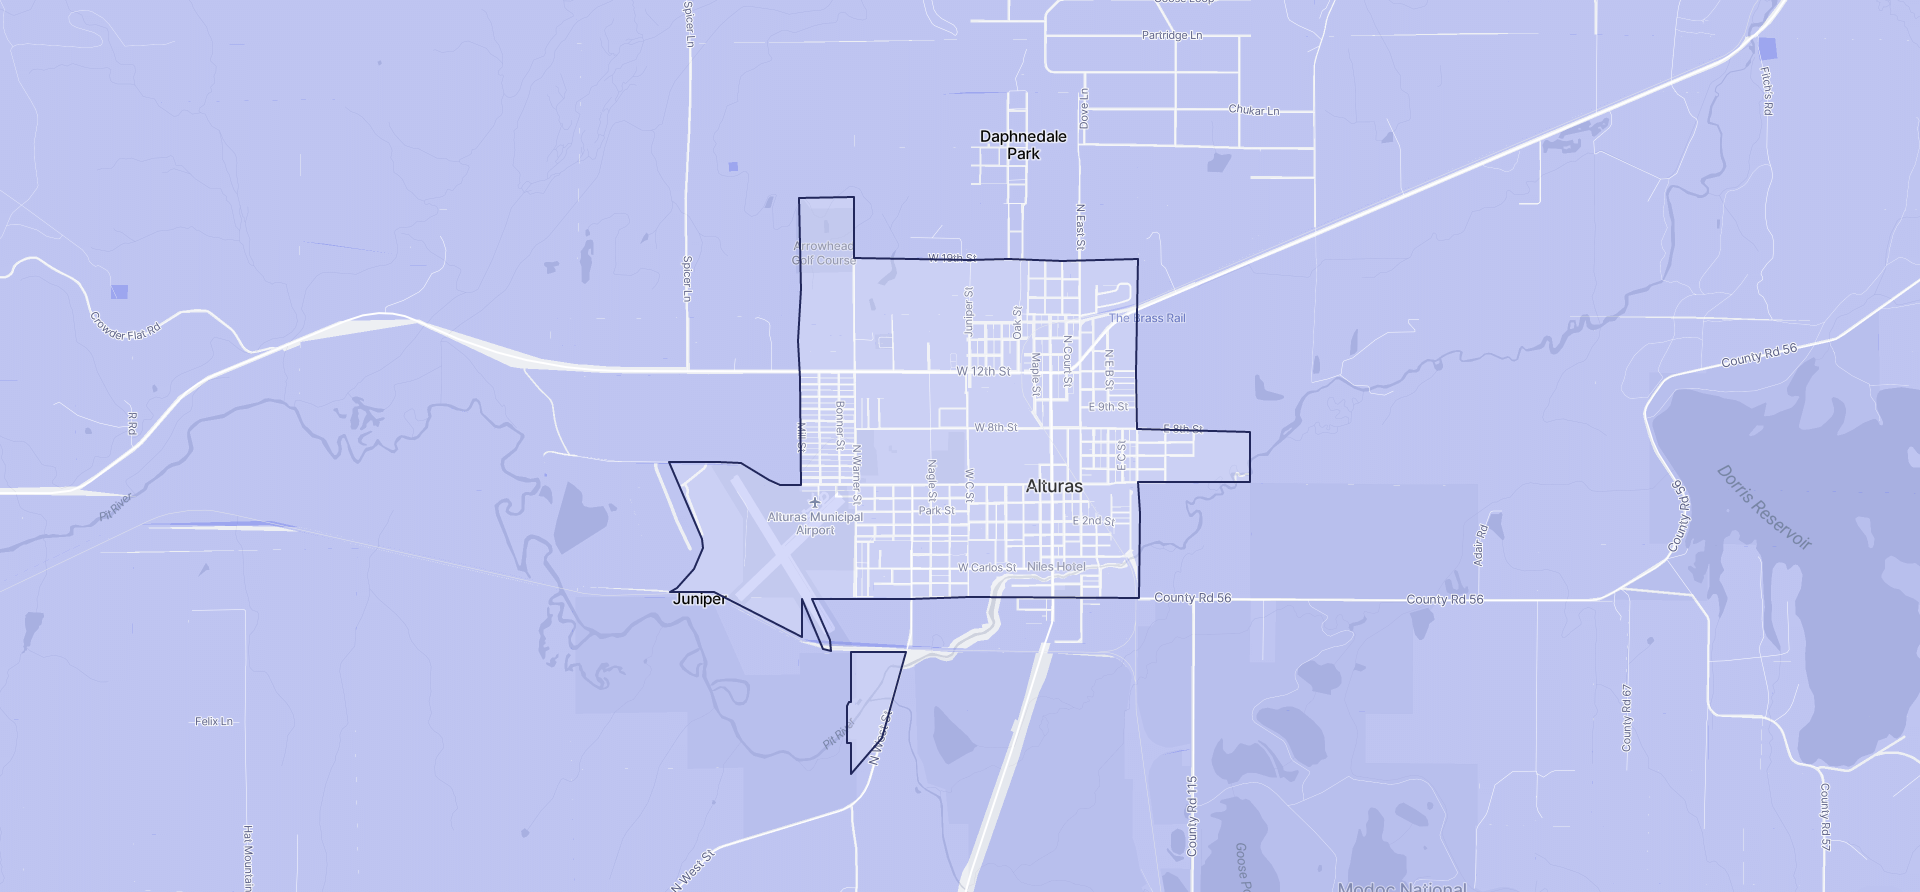 Image of Alturas boundaries on a map.